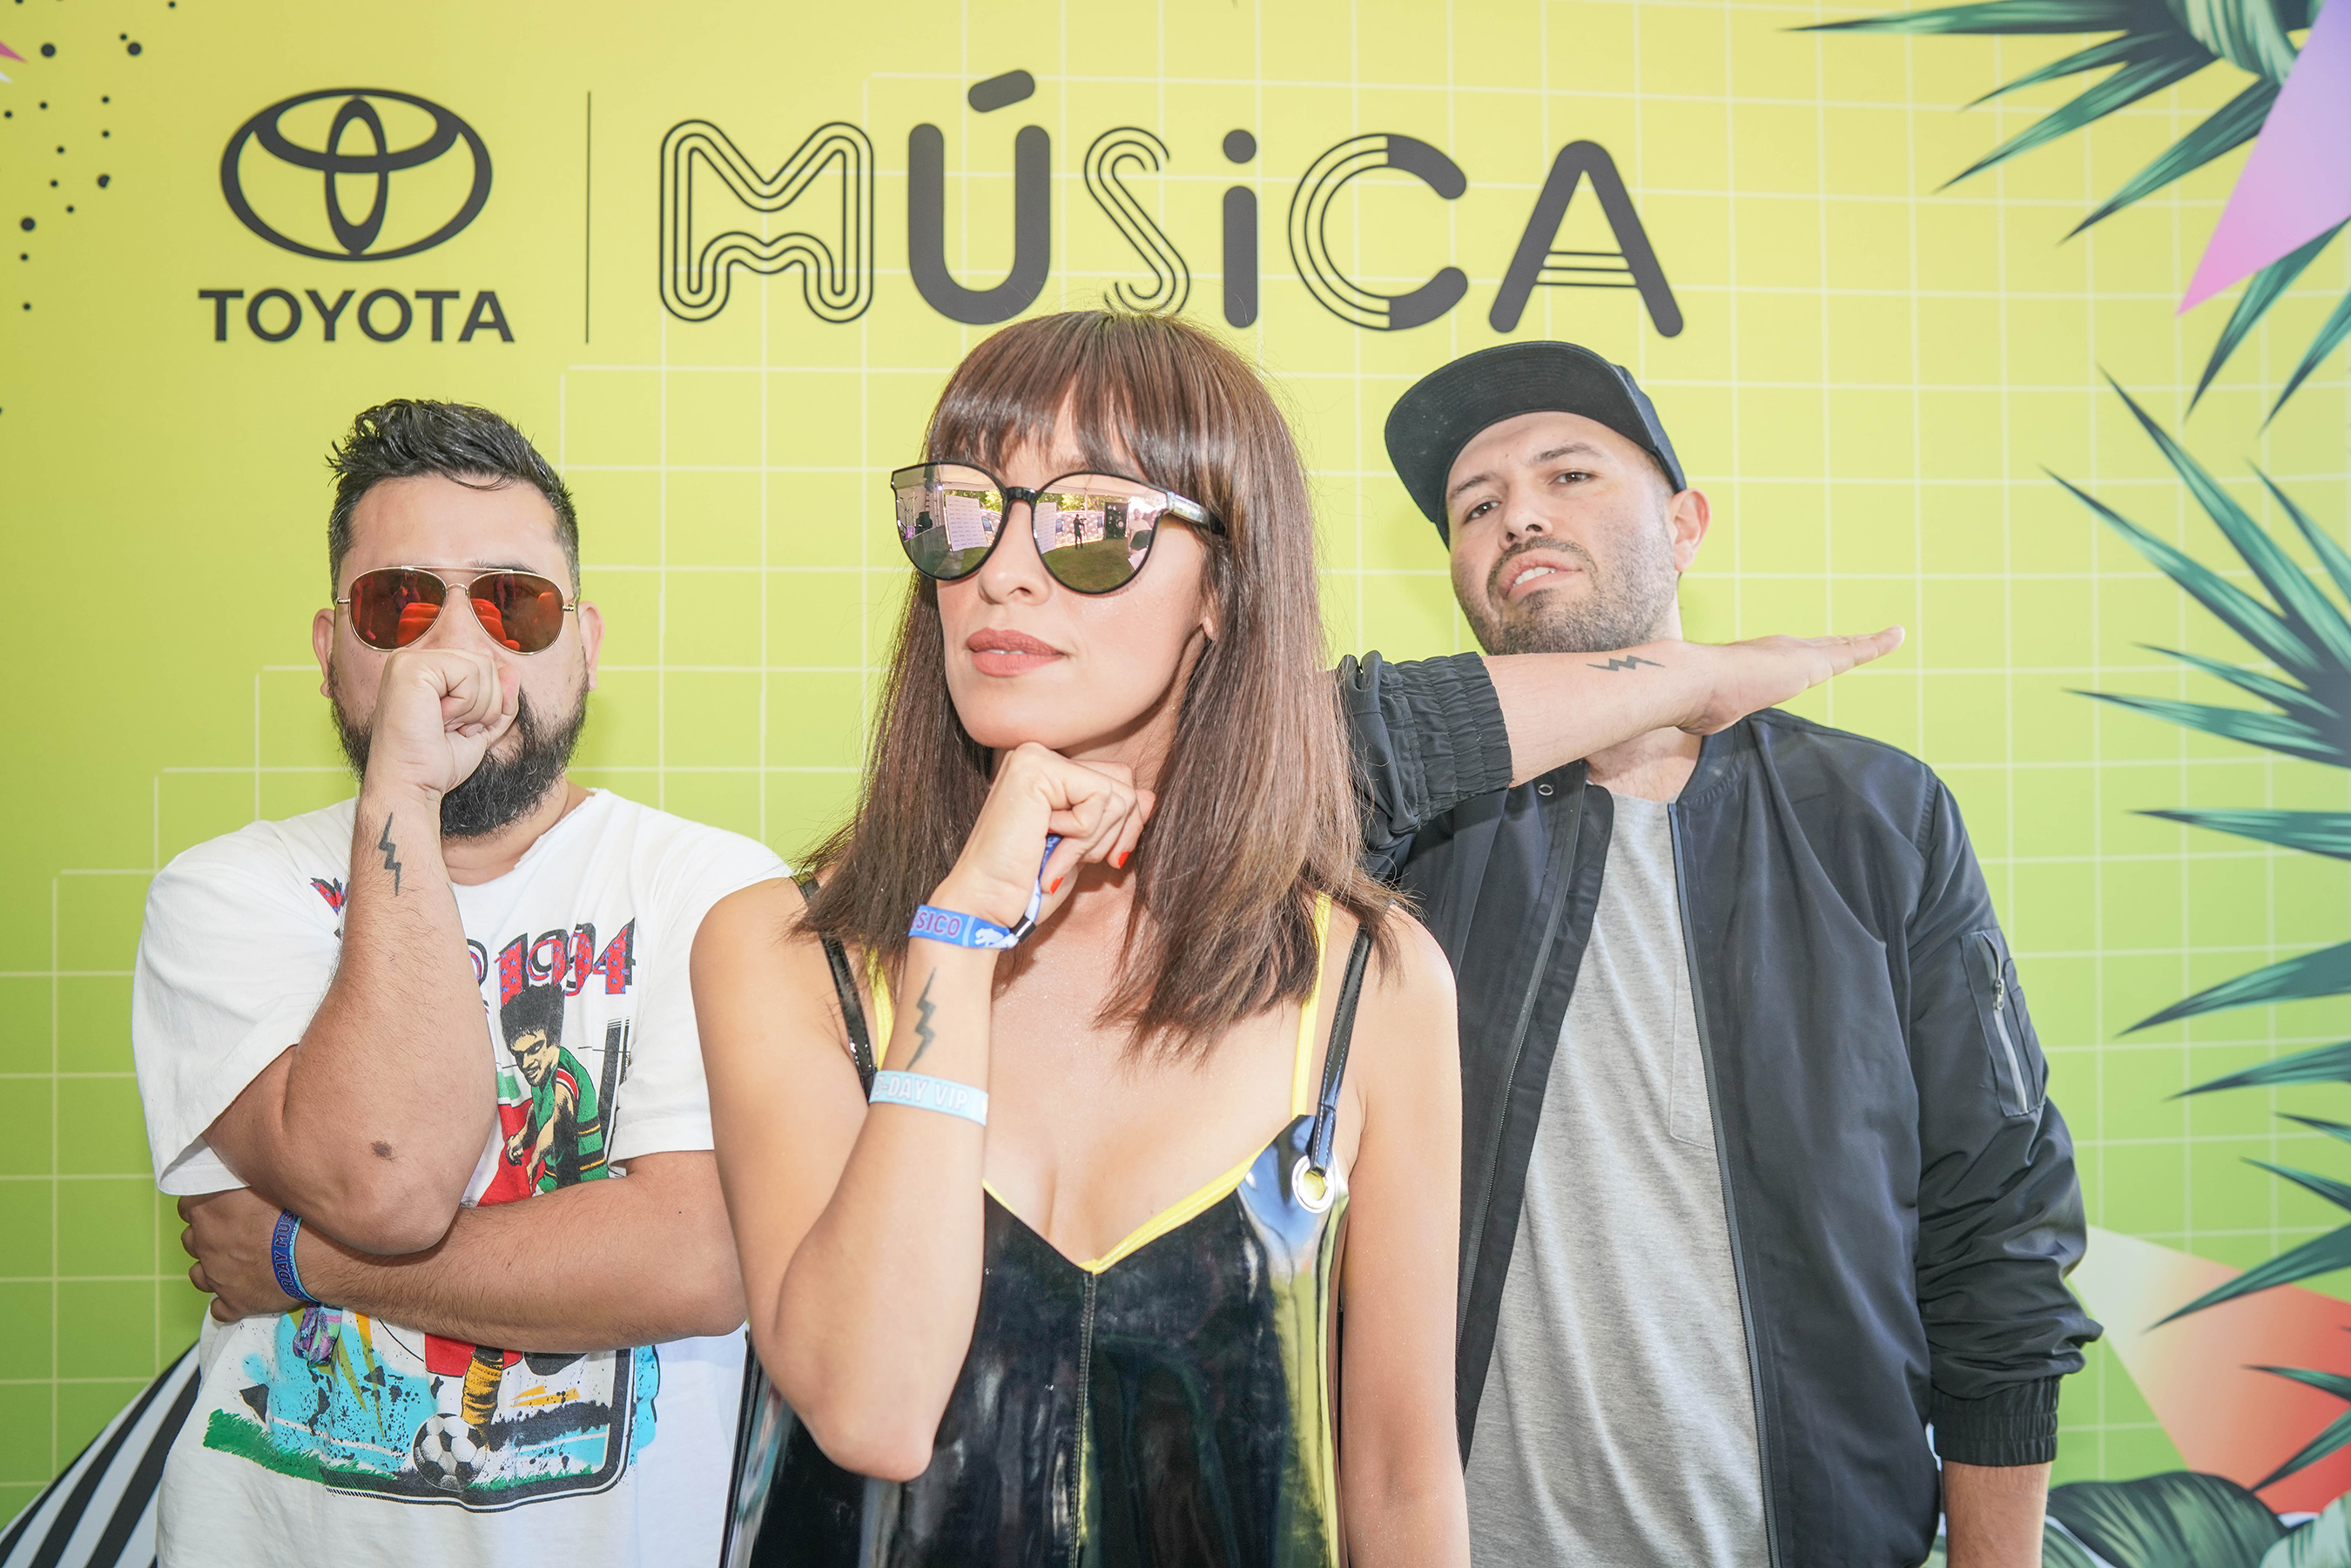 The Toyota Music Den featured Latin pop rock band, Los Hollywood, on day 2 of a music-packed weekend at Ruido Fest 2018.